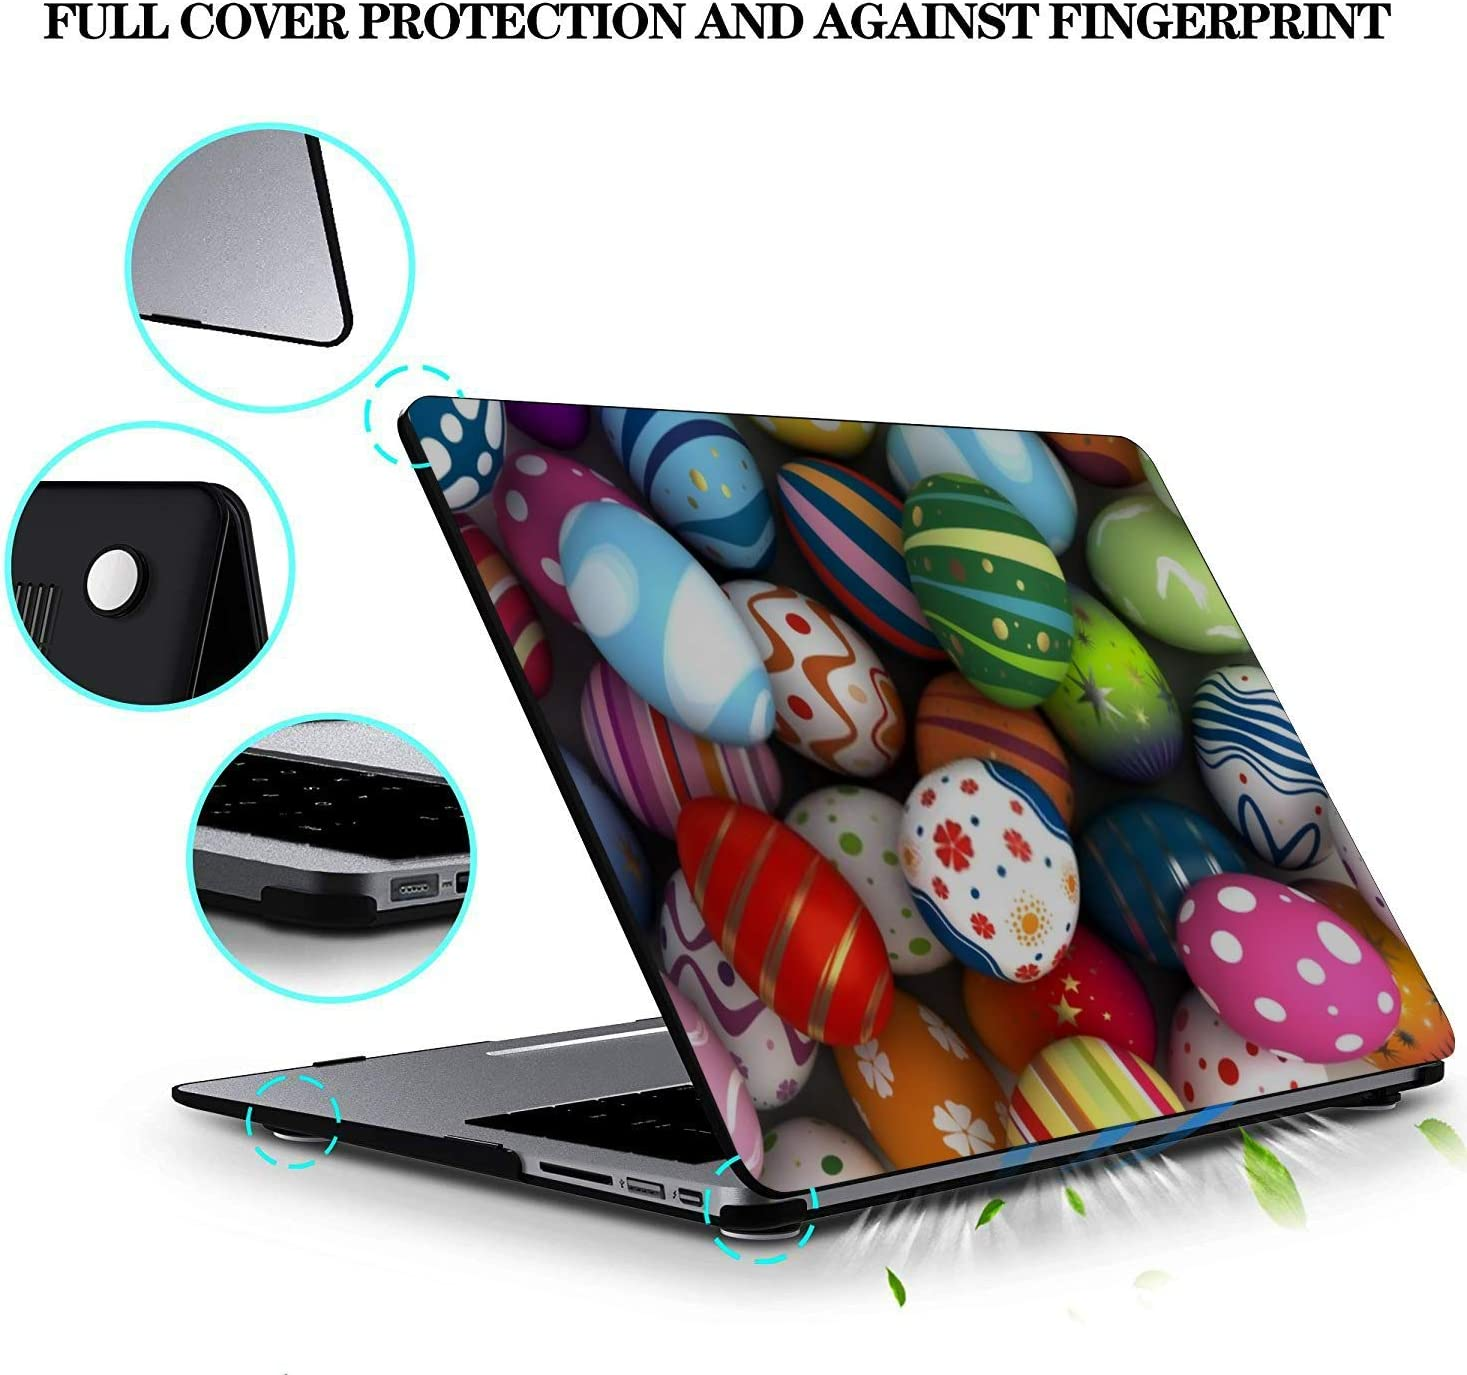 MacBook Pro Case Background Easter Eggs Computer Generated Image MacBook Retina 12 A1534 Plastic Case Keyboard Cover /& Screen Protector /& Keyboard C